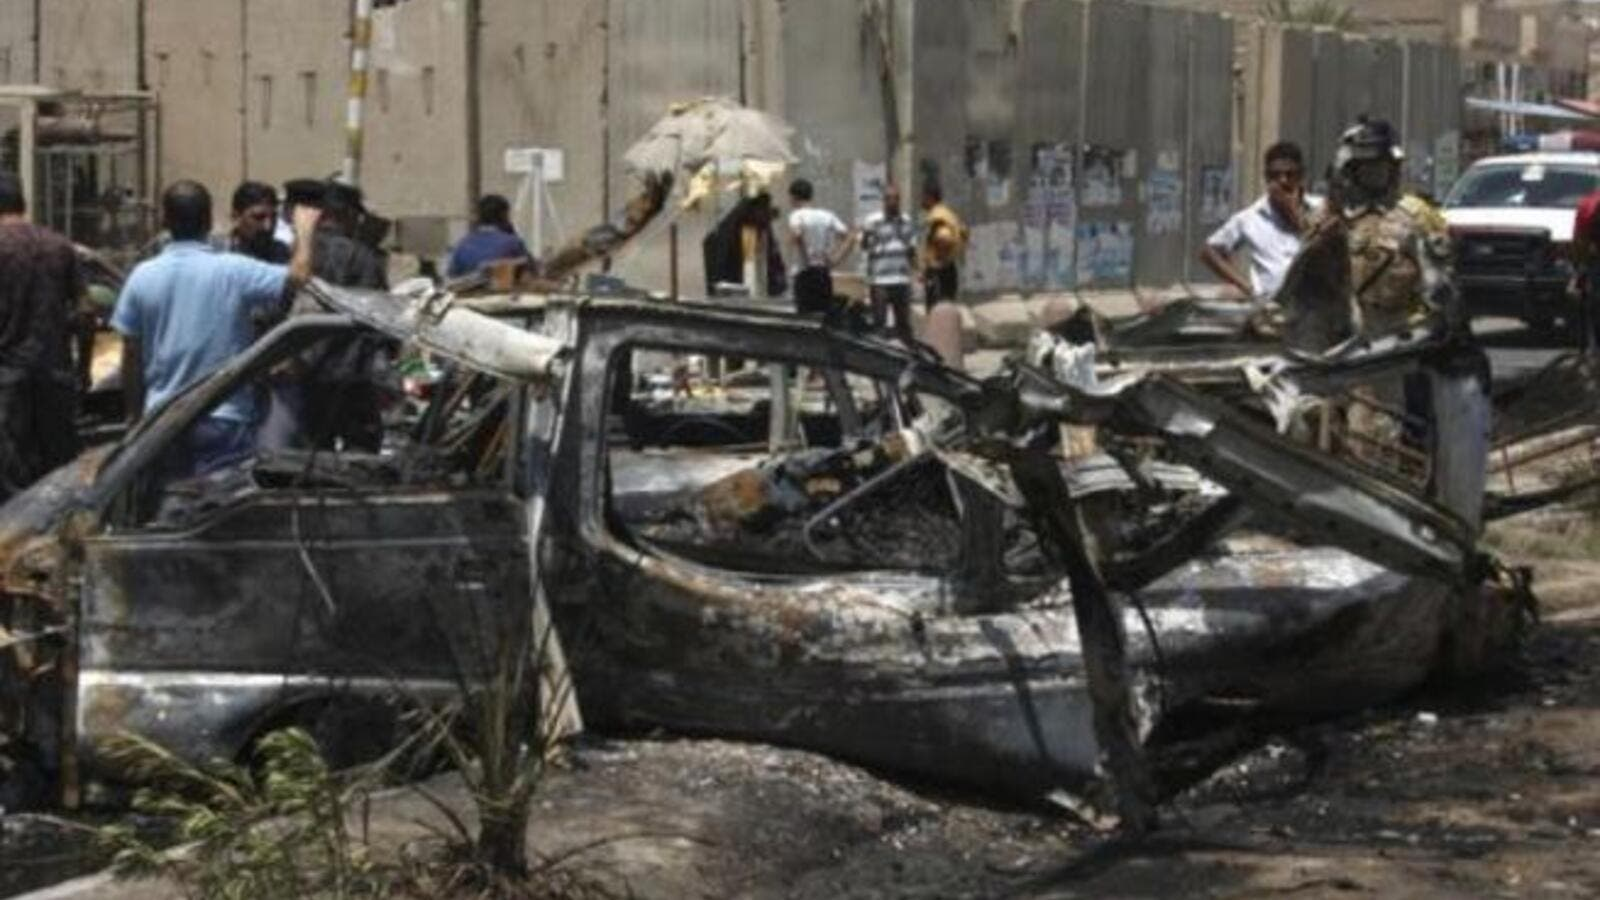 People inspect site of a car bomb attack in Iraq. [presstv]